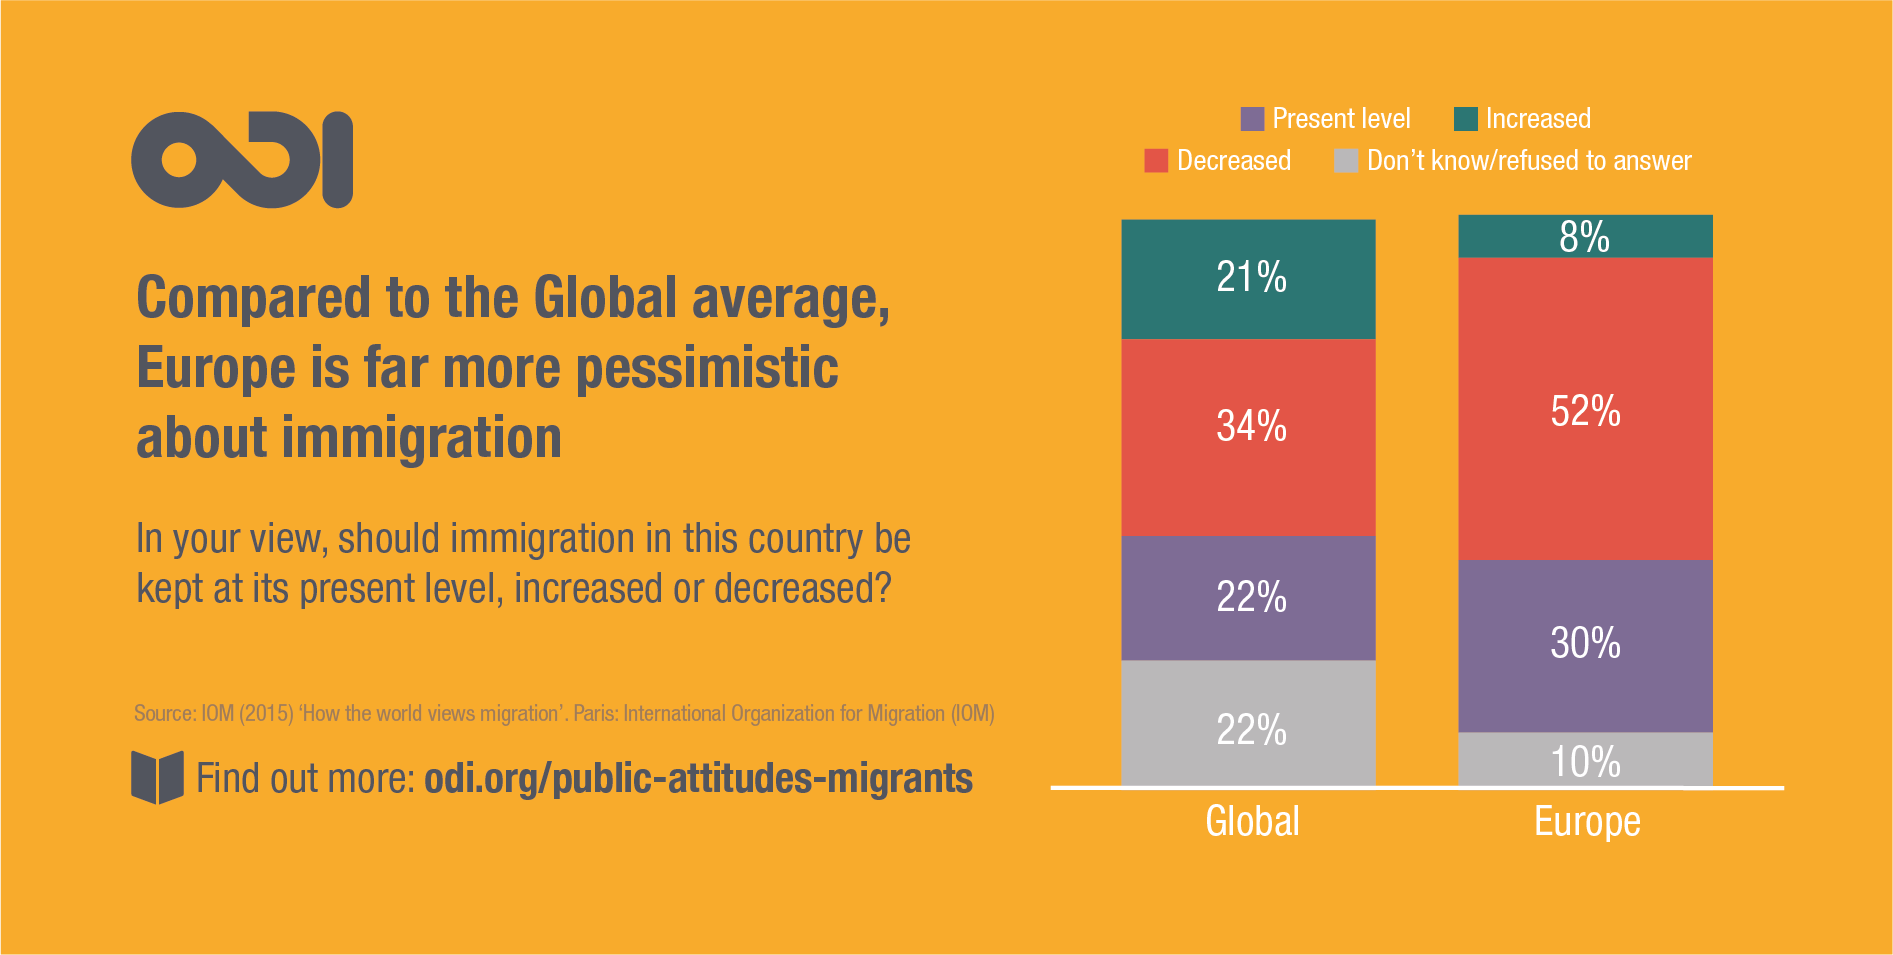 Public attitudes towards immigration in Europe and the rest of the world, 2017 © ODI